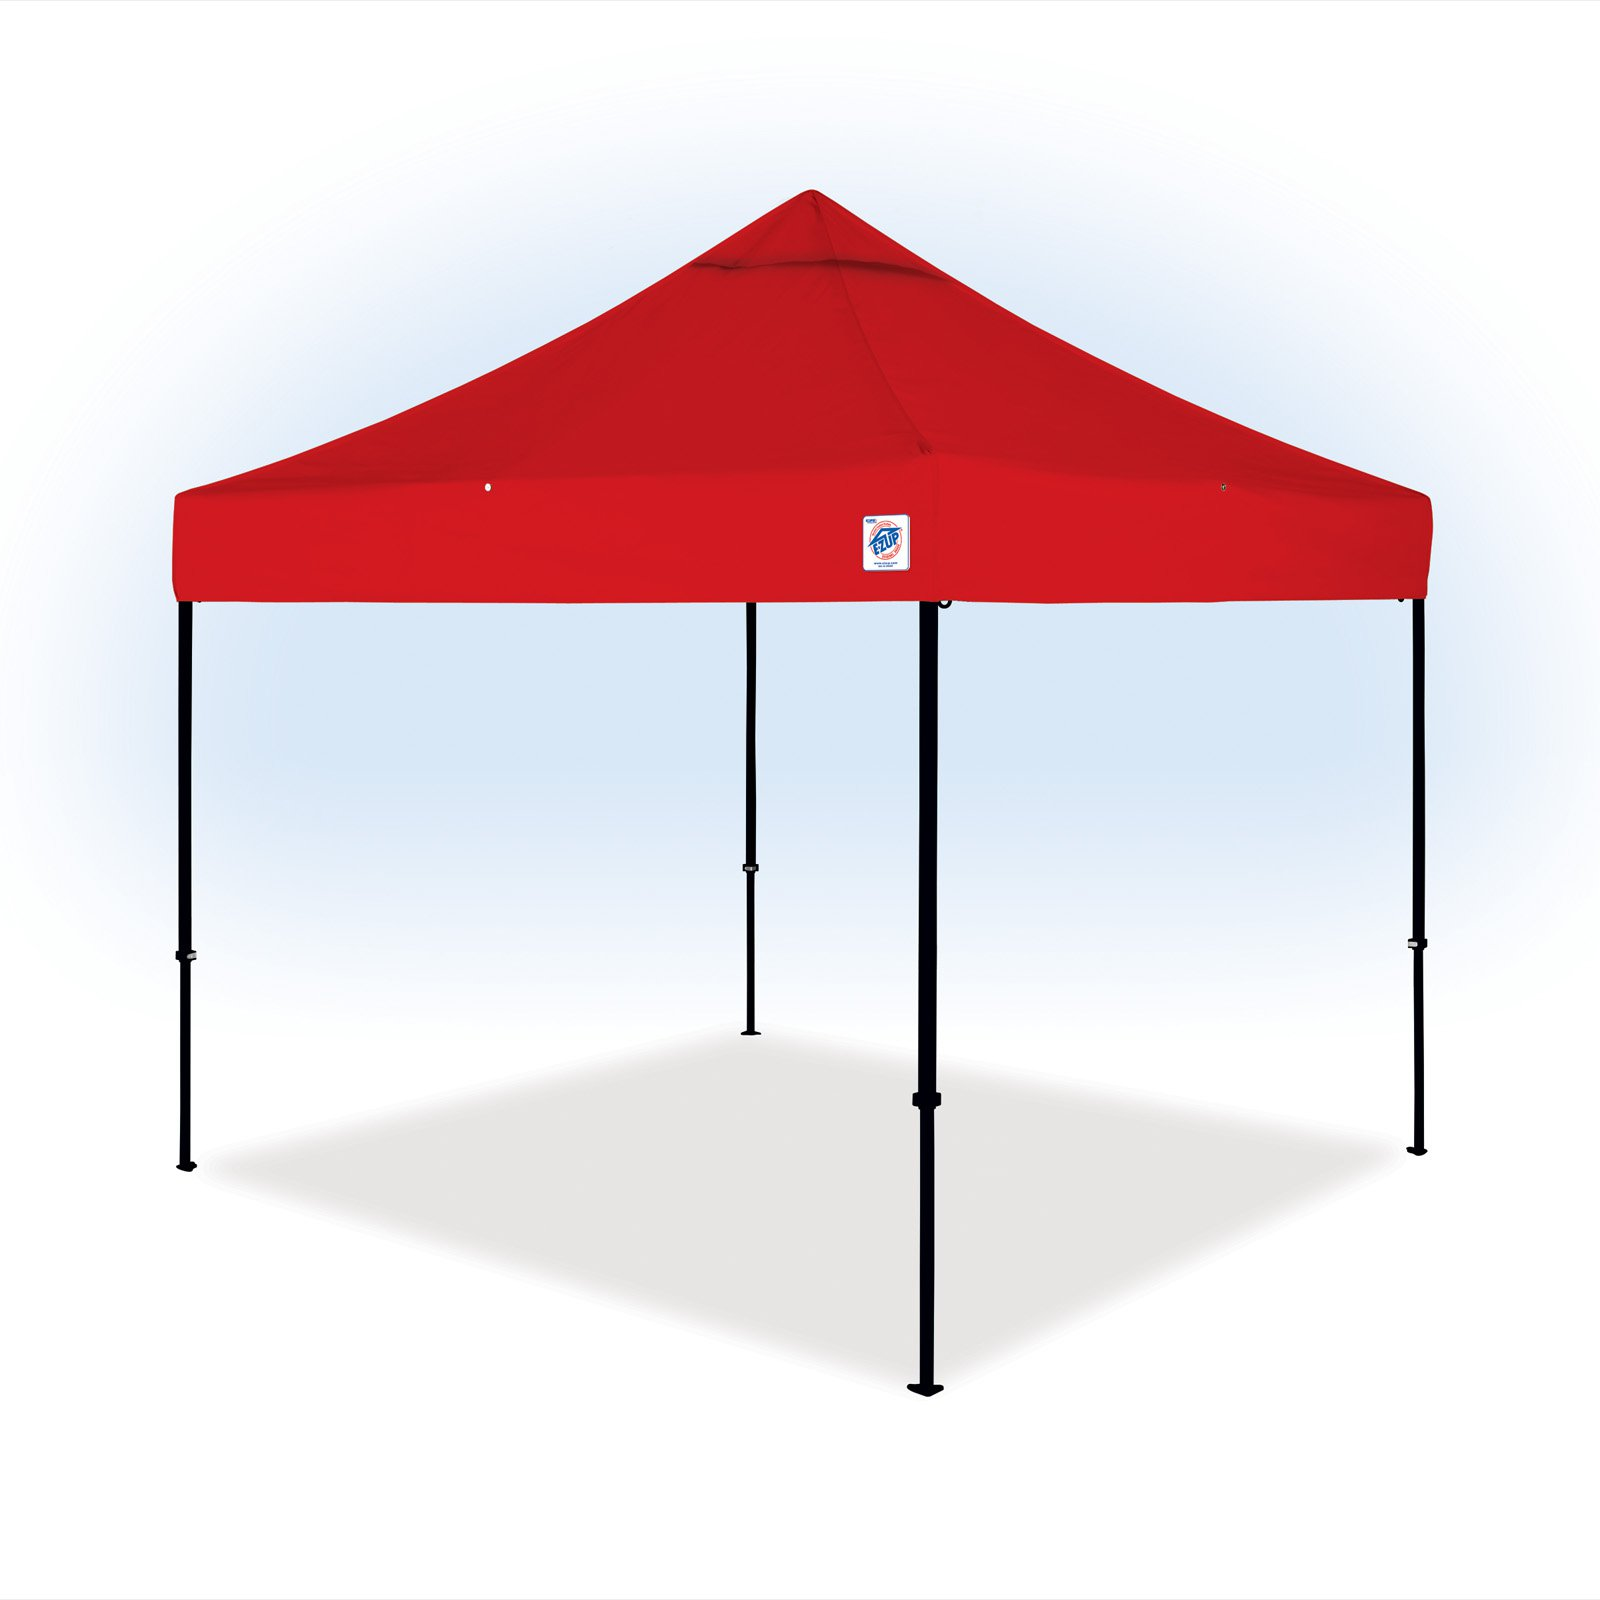 E-Z UPu0026reg; Eclipse II 10x10 ft. Pop Up Canopy with Wind Vent Top - Walmart .com  sc 1 st  Walmart & E-Z UPu0026reg; Eclipse II 10x10 ft. Pop Up Canopy with Wind Vent Top ...